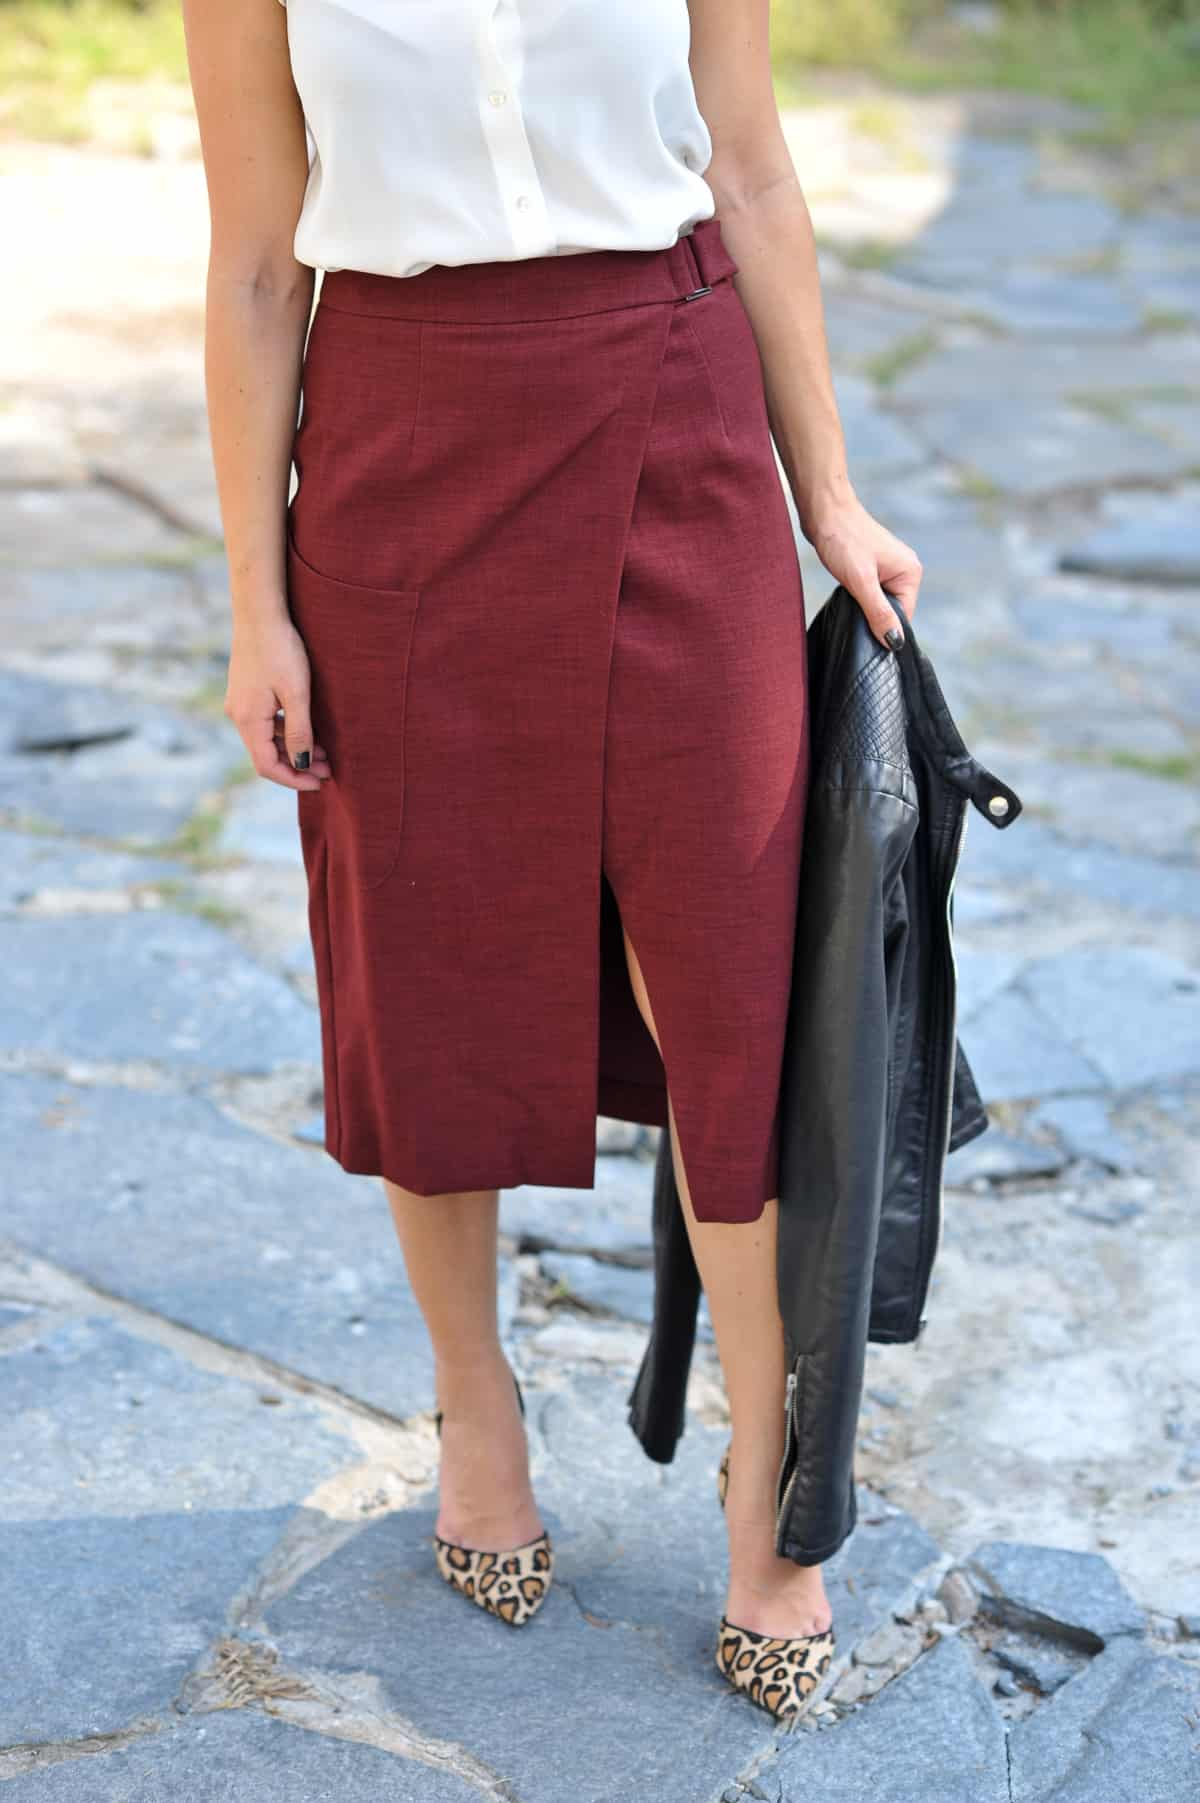 How To Wear A Midi Skirt For Fall That Isn't Boring